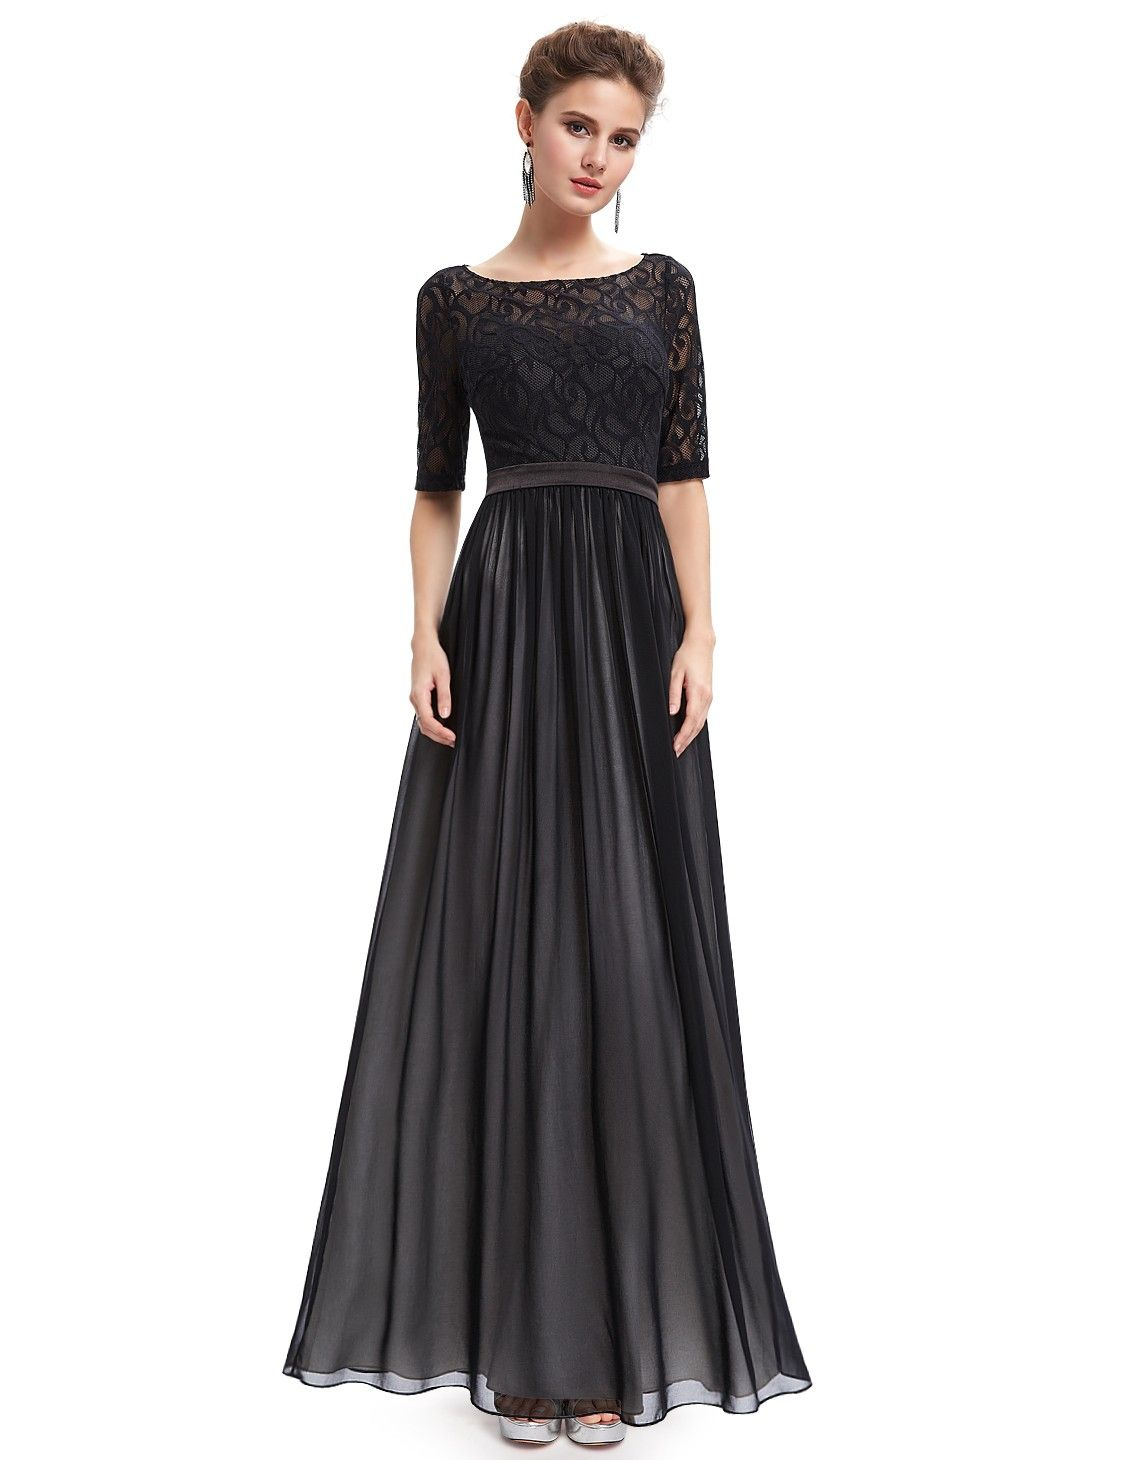 Lace long sleeve illusion neckline evening dress illusion neckline